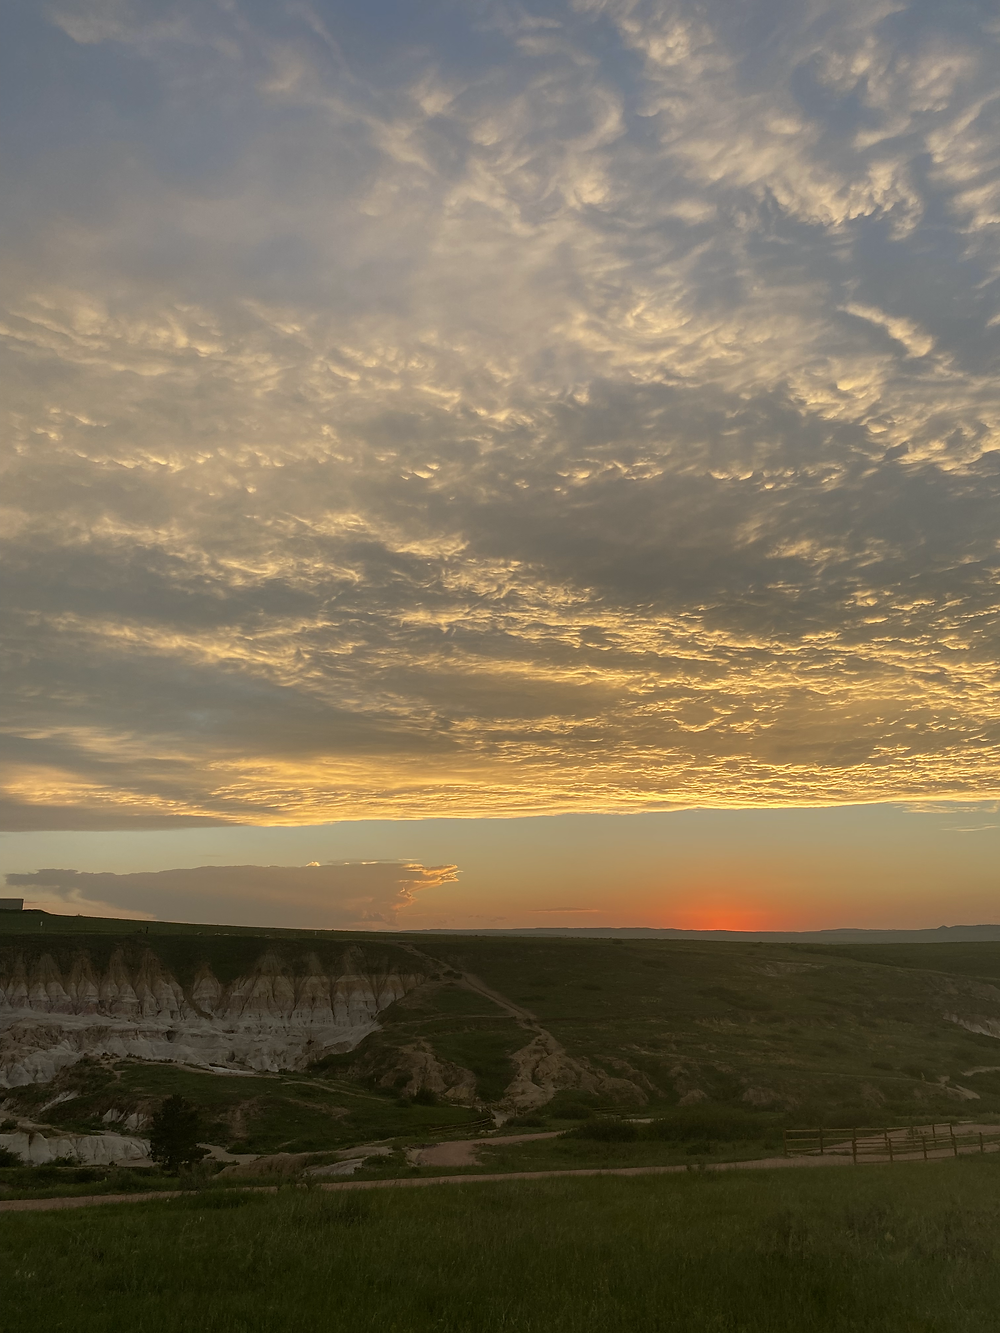 A brilliant sunset stains the clouds overhead the alien rock formations of Paint Mines in Colorado